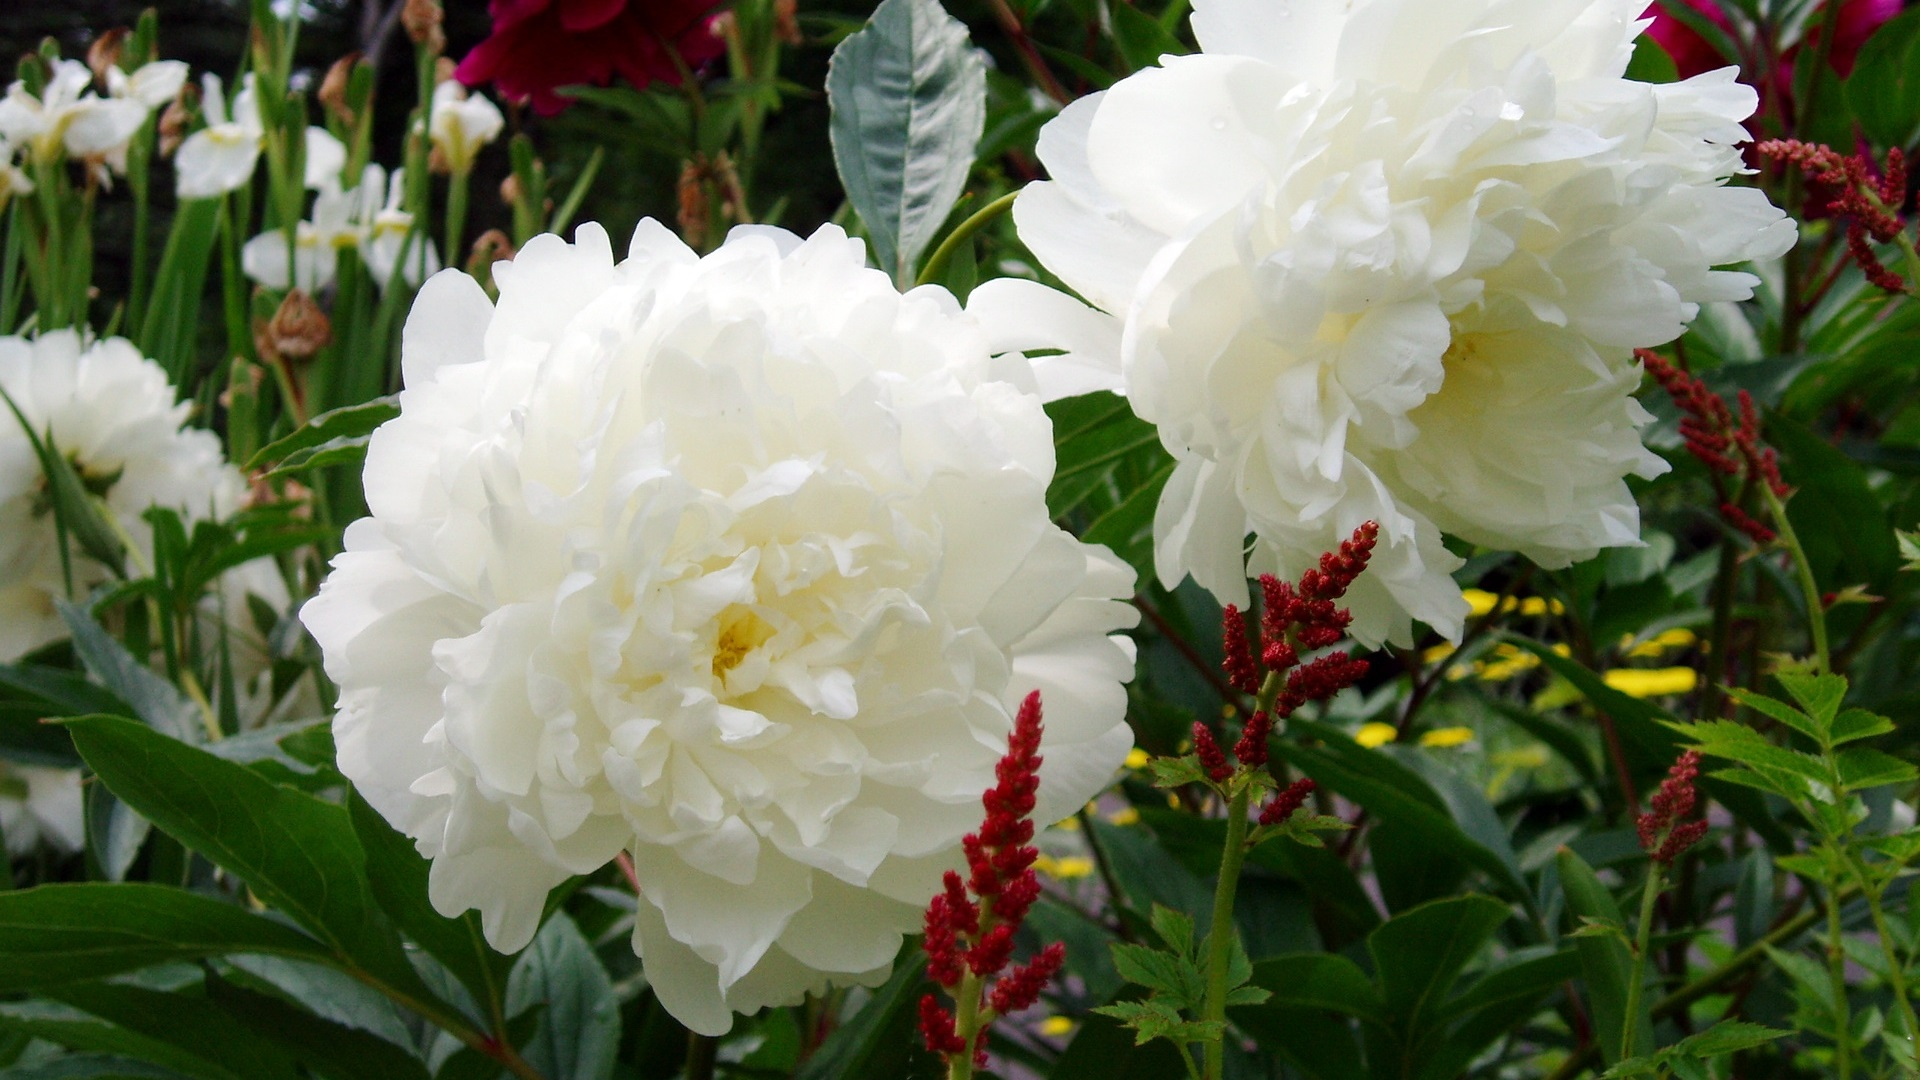 Wallpaper White Peonies Flowers Garden 1920x1440 HD Picture Image